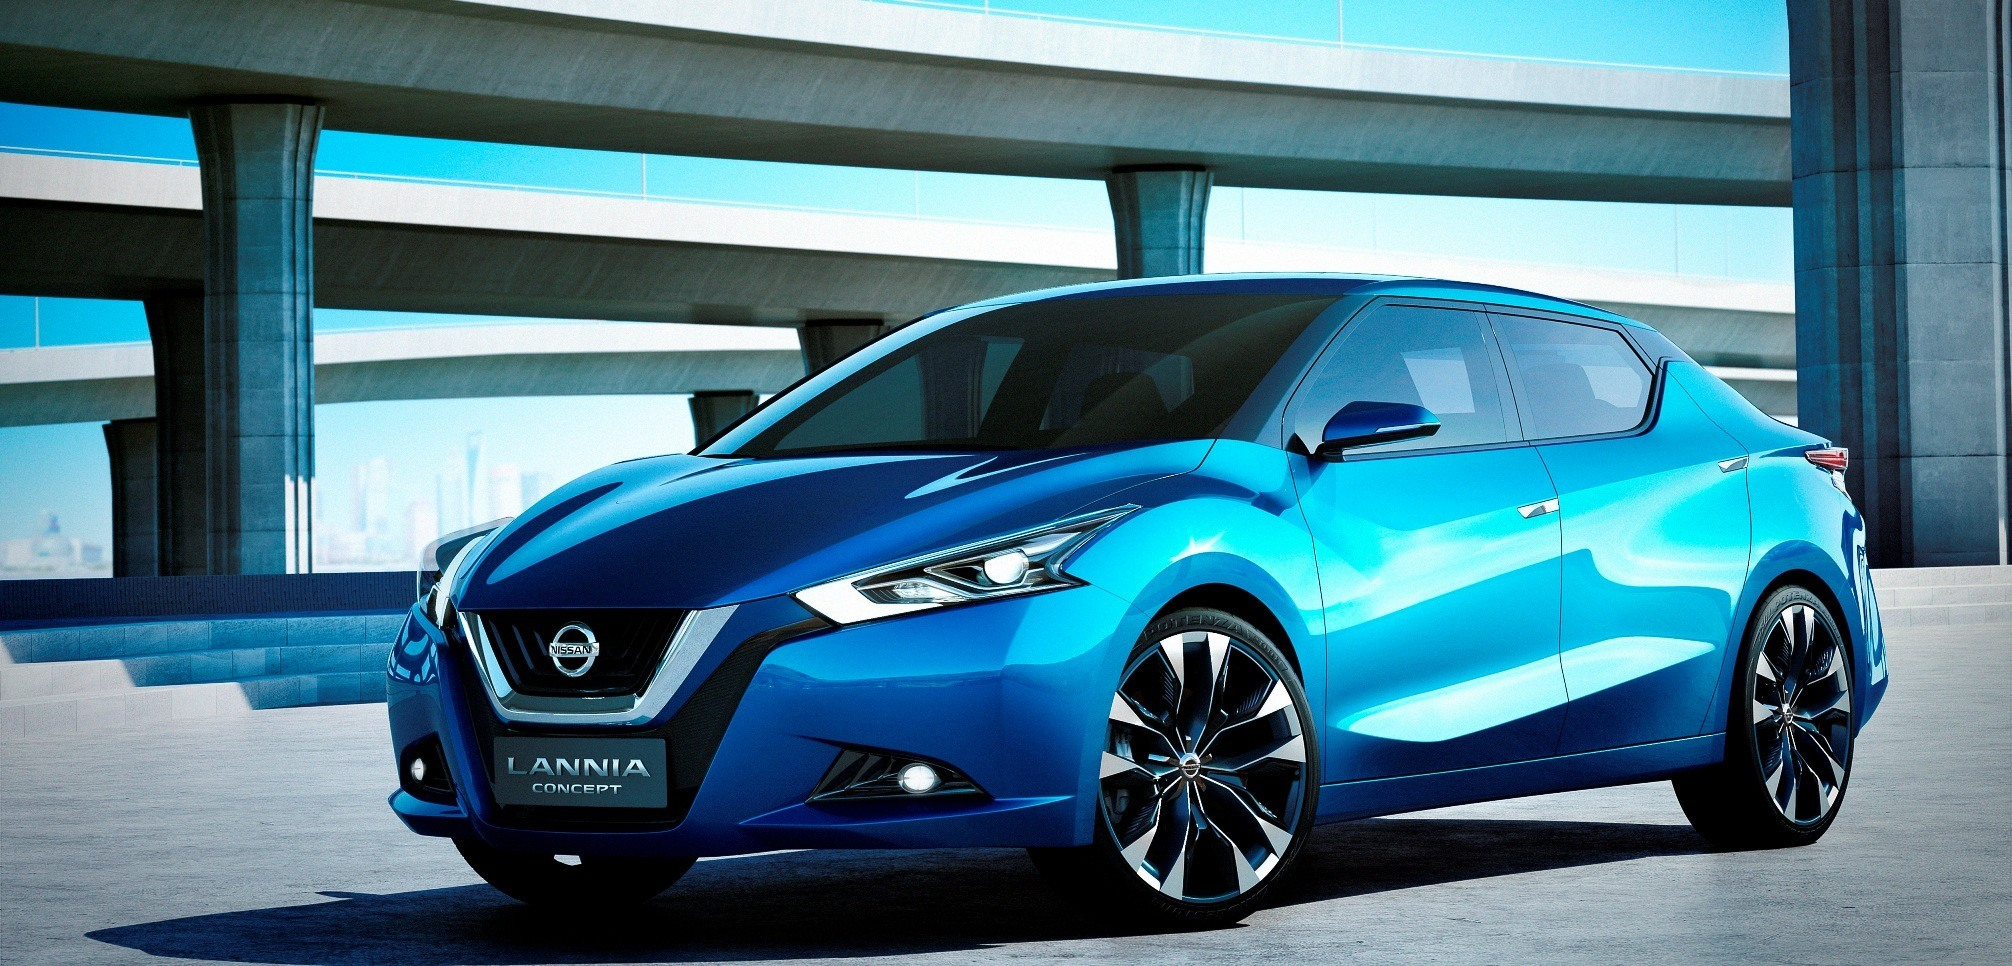 nissan lannia concept car photos catalog